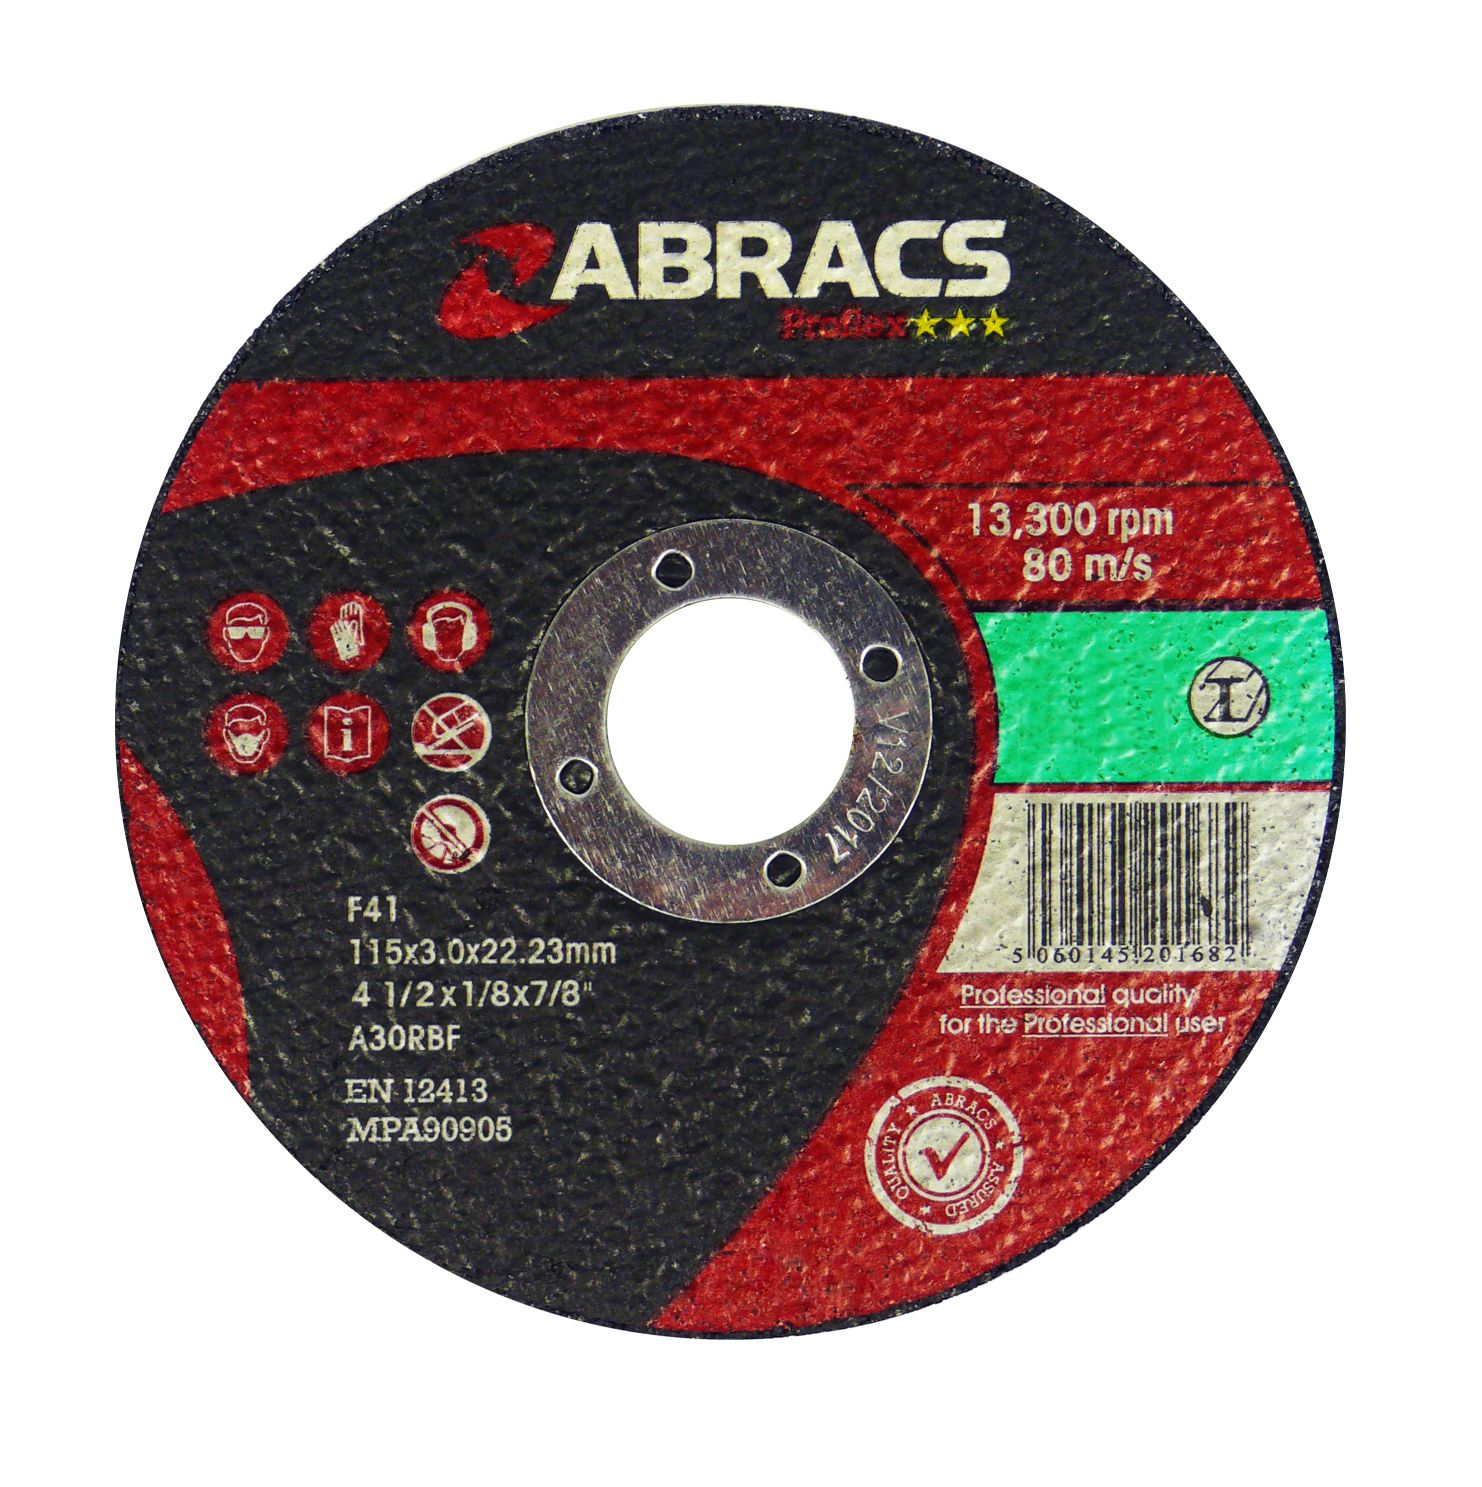 STONE CUTTING DISC - FLAT 125 X 3.0 X 22MM